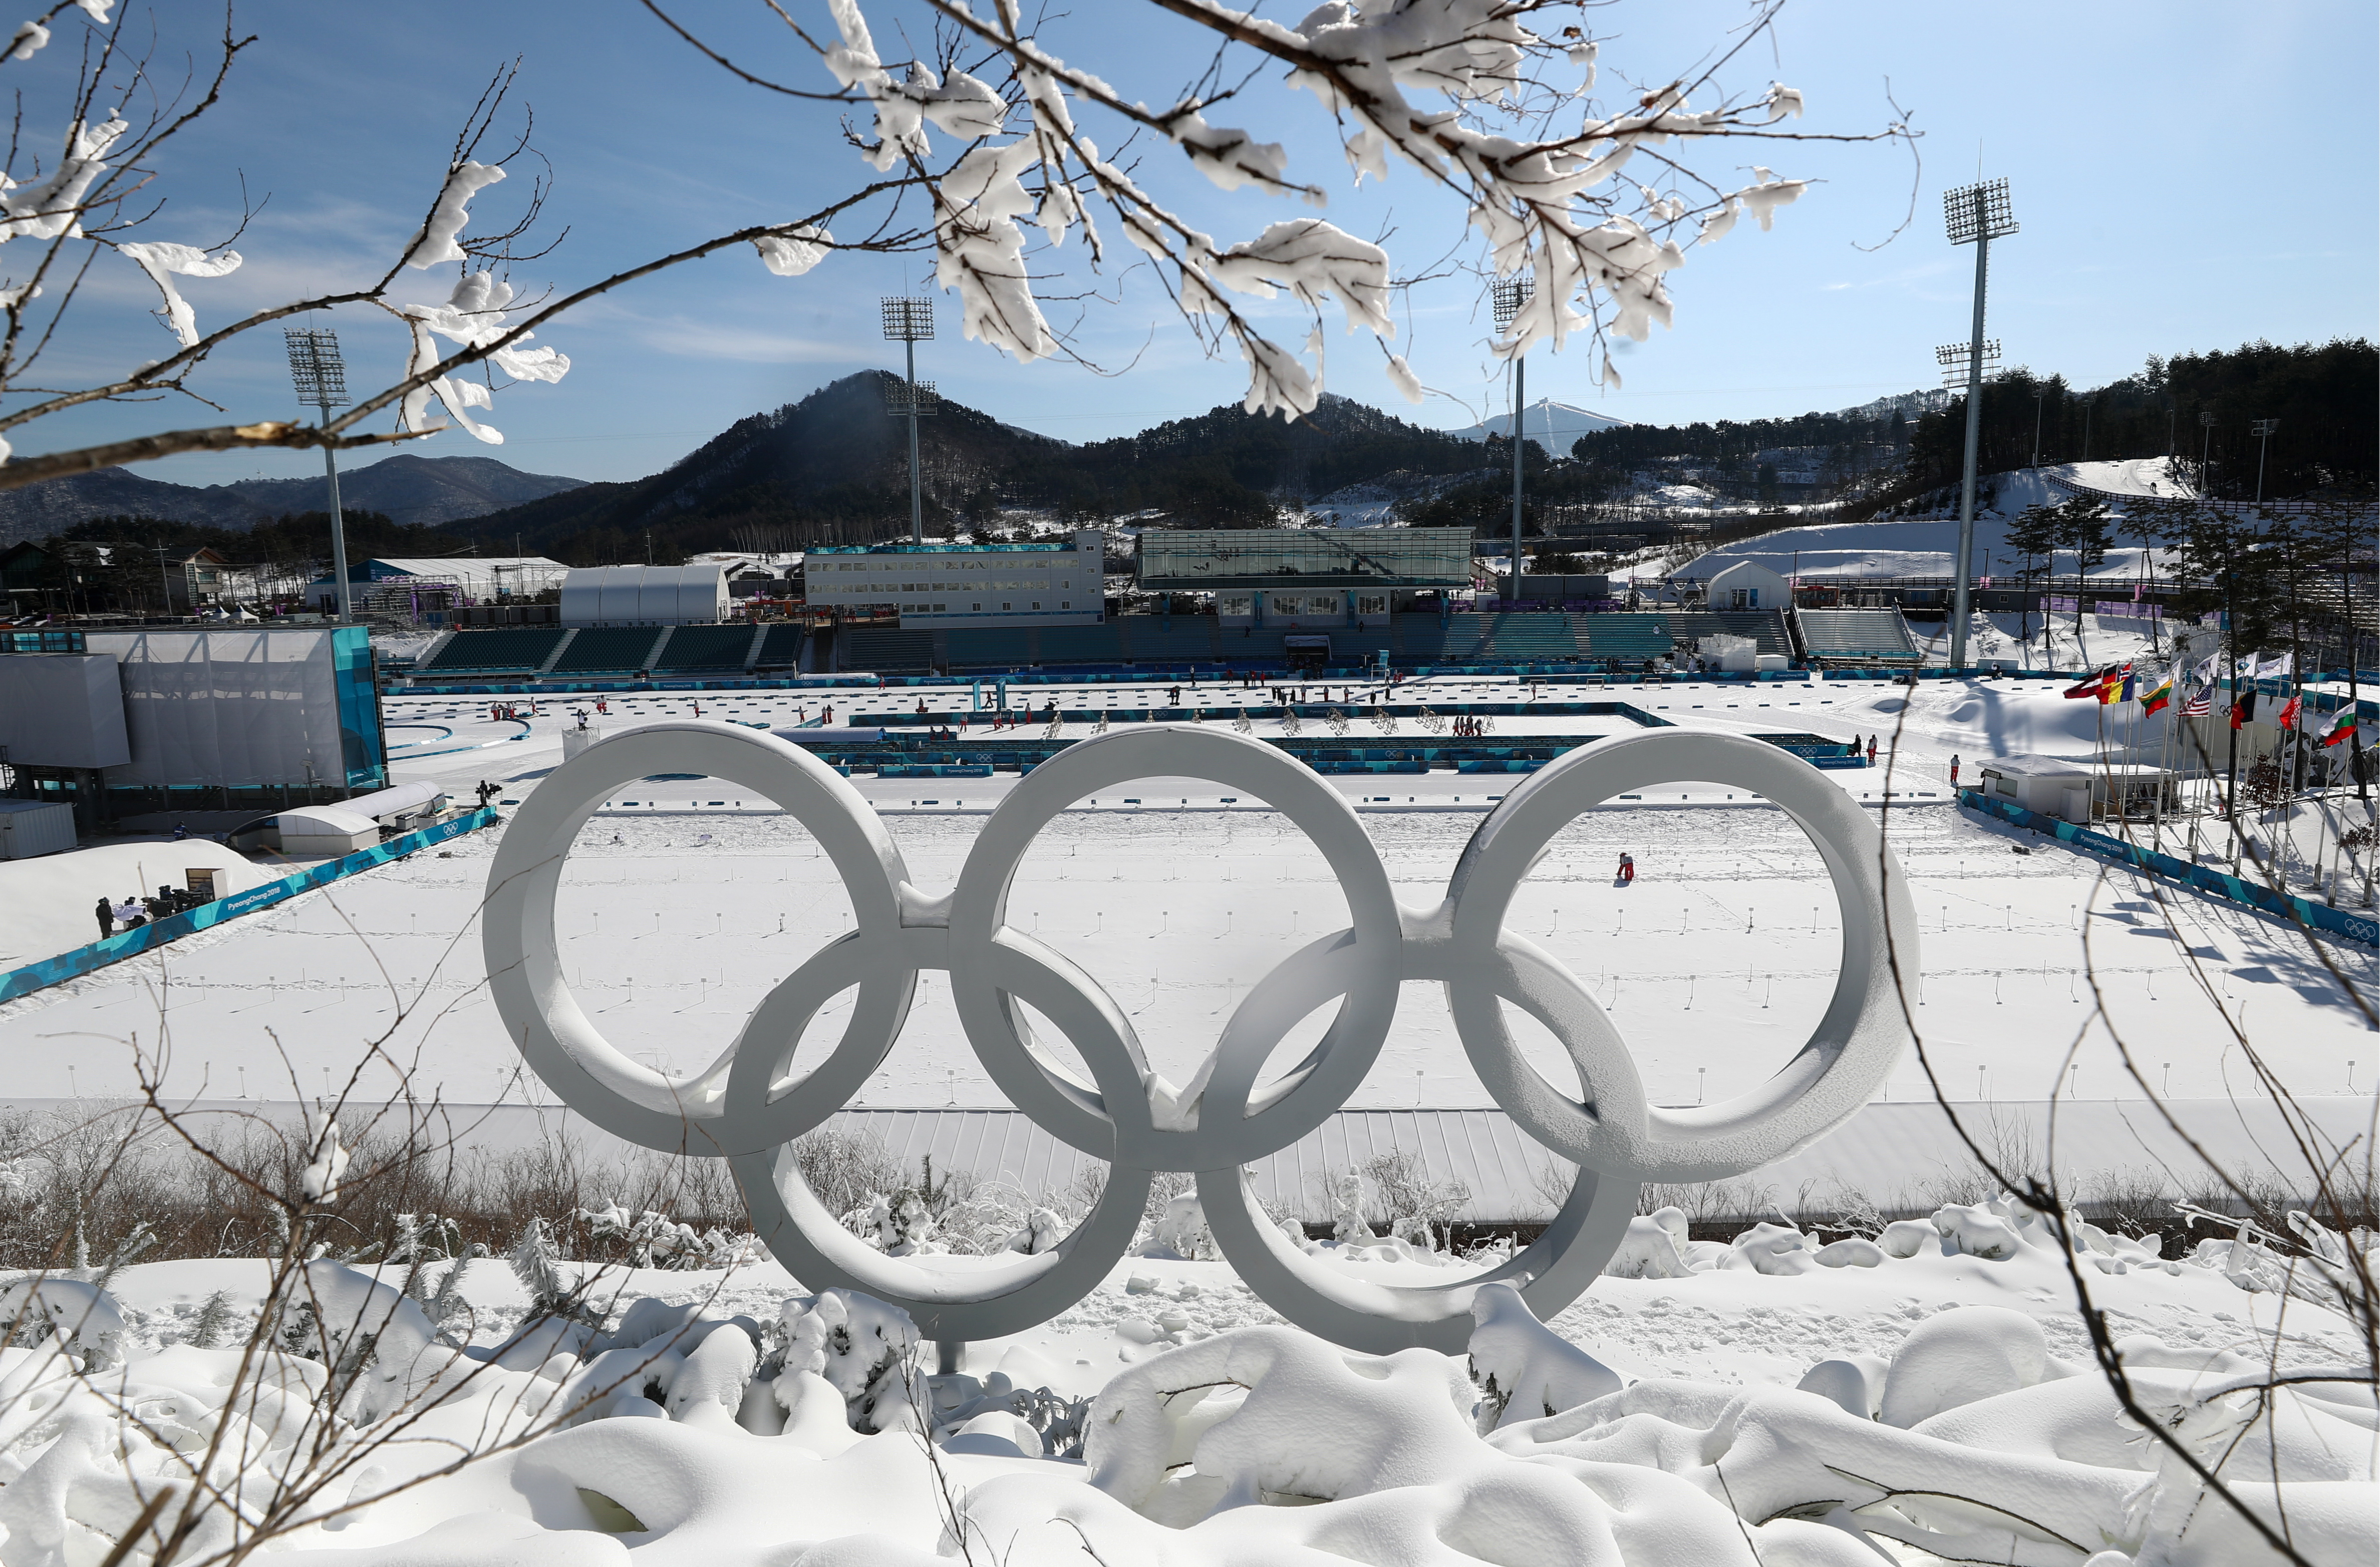 PyeongChang two days ahead of opening of 2018 Winter Olympic Games